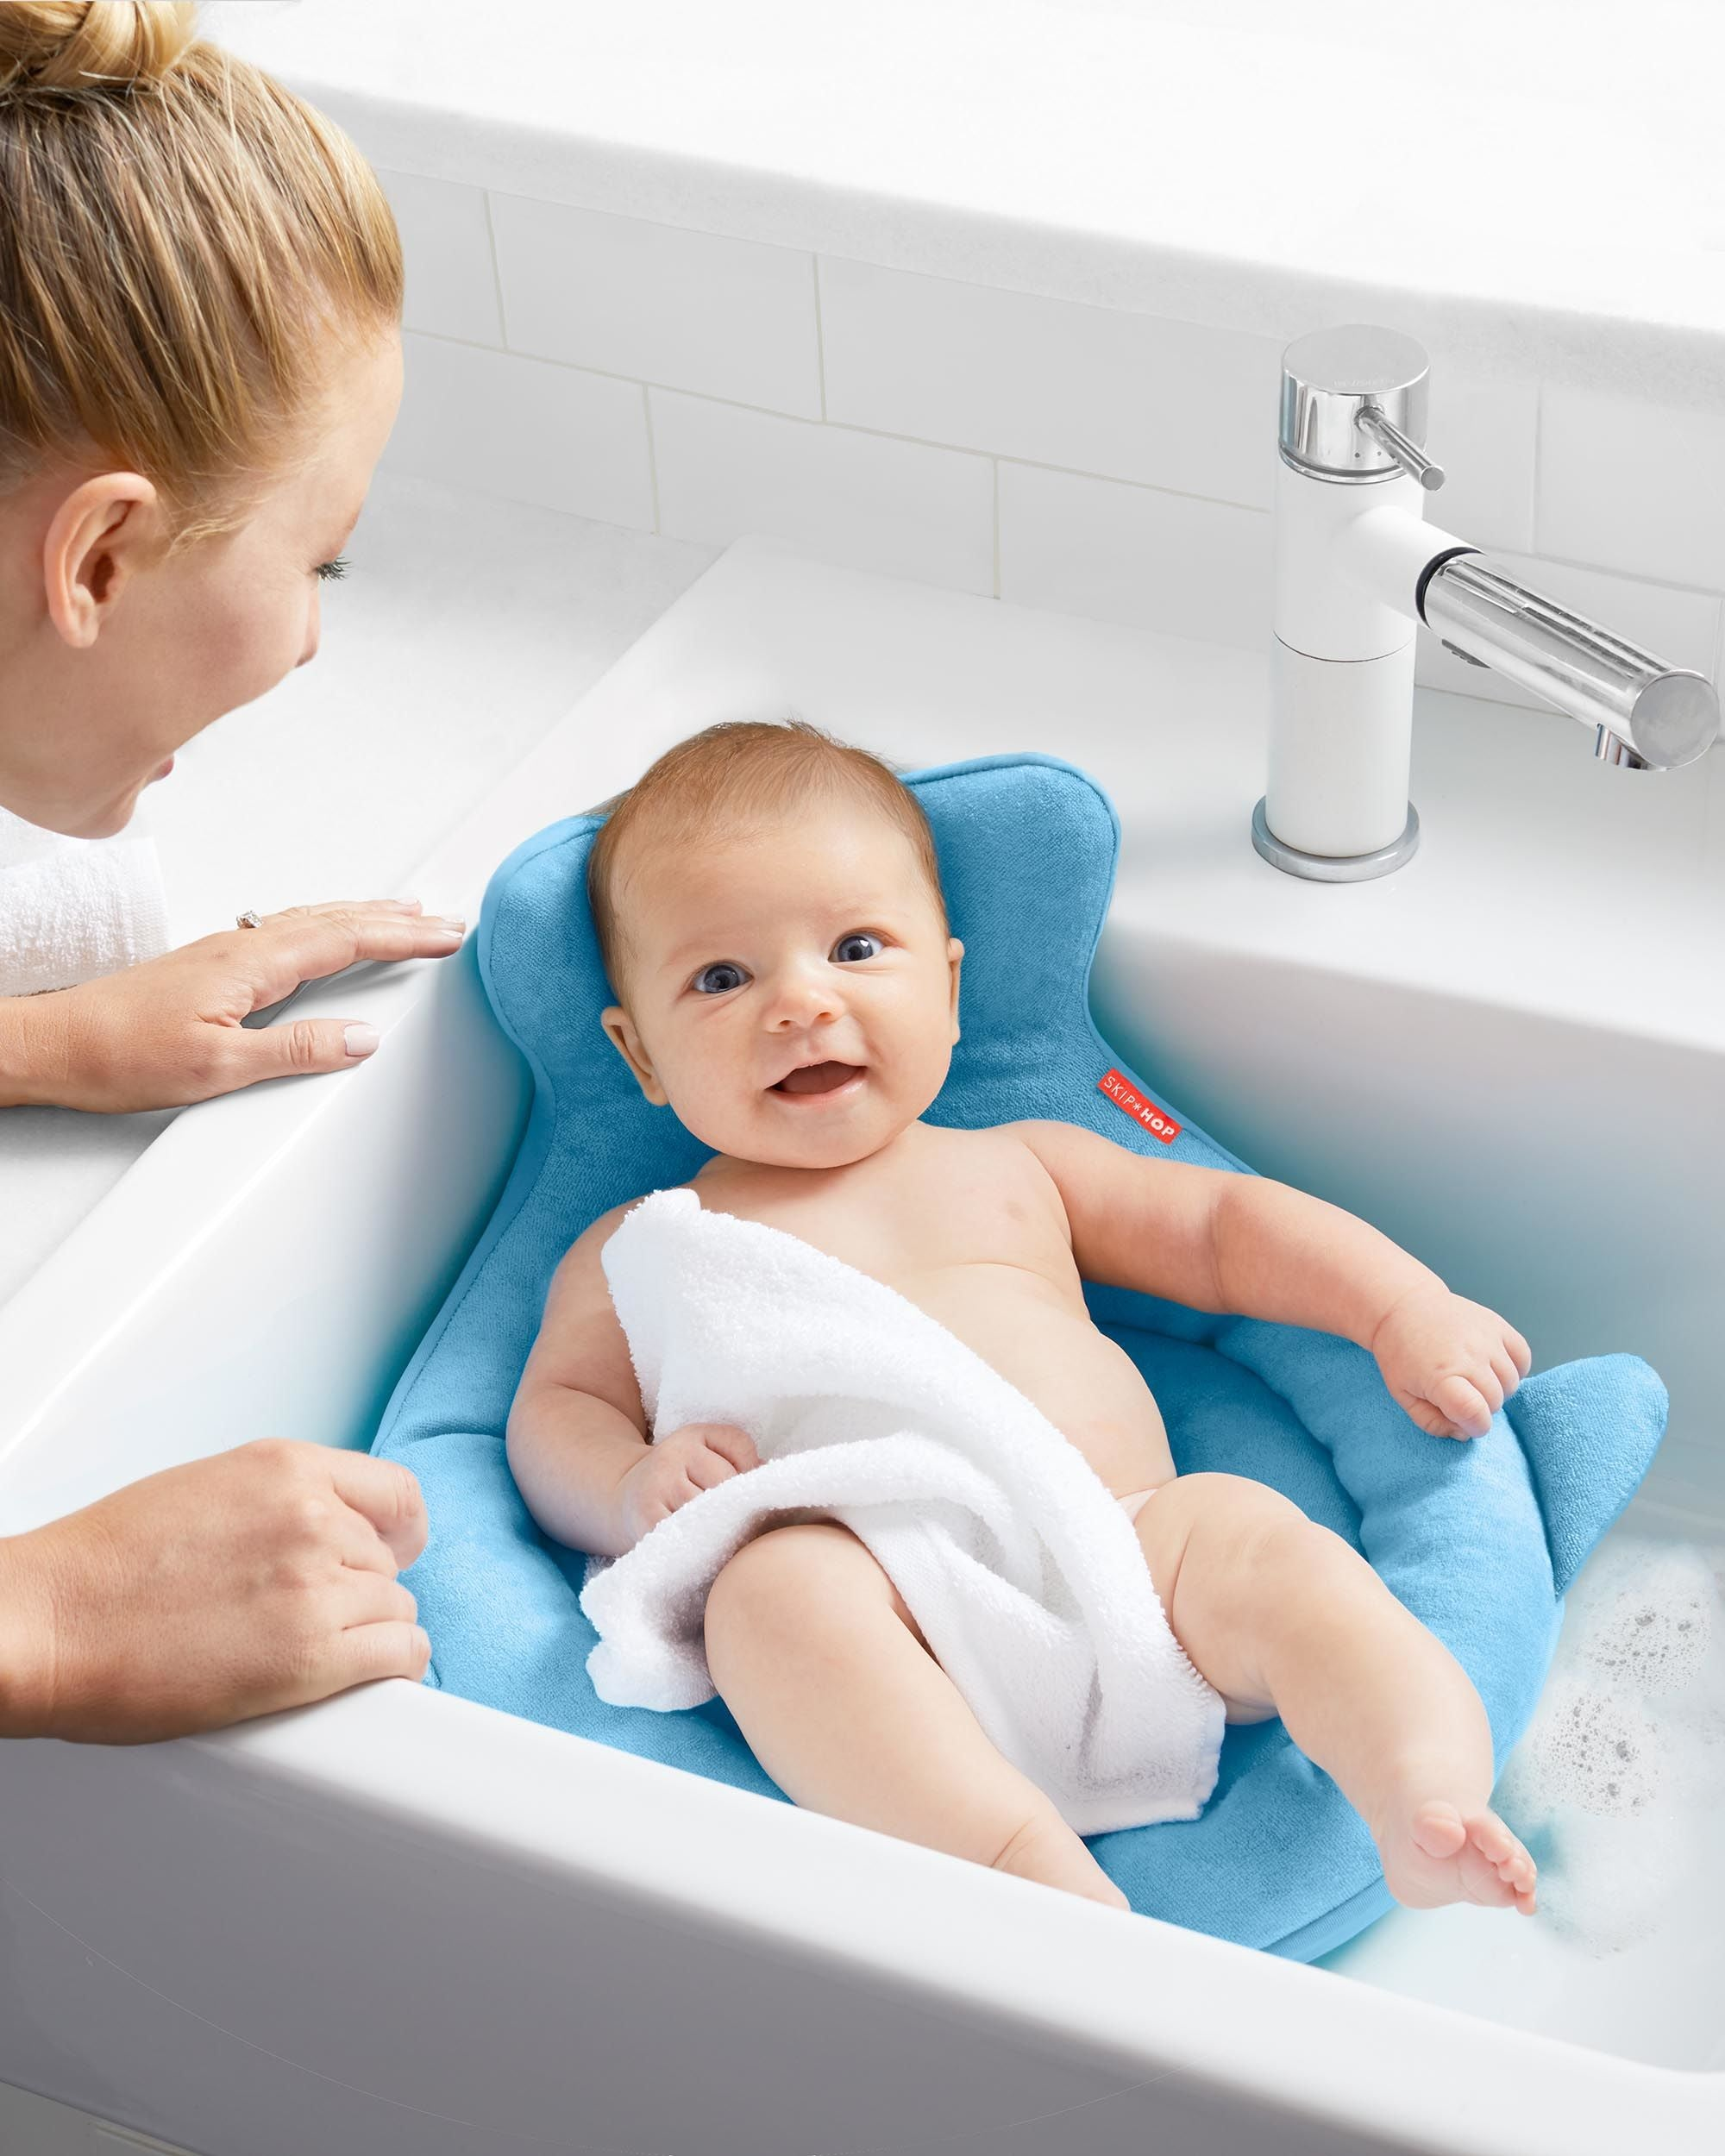 Skip Hop Moby SoftSpot Sink Bather ...